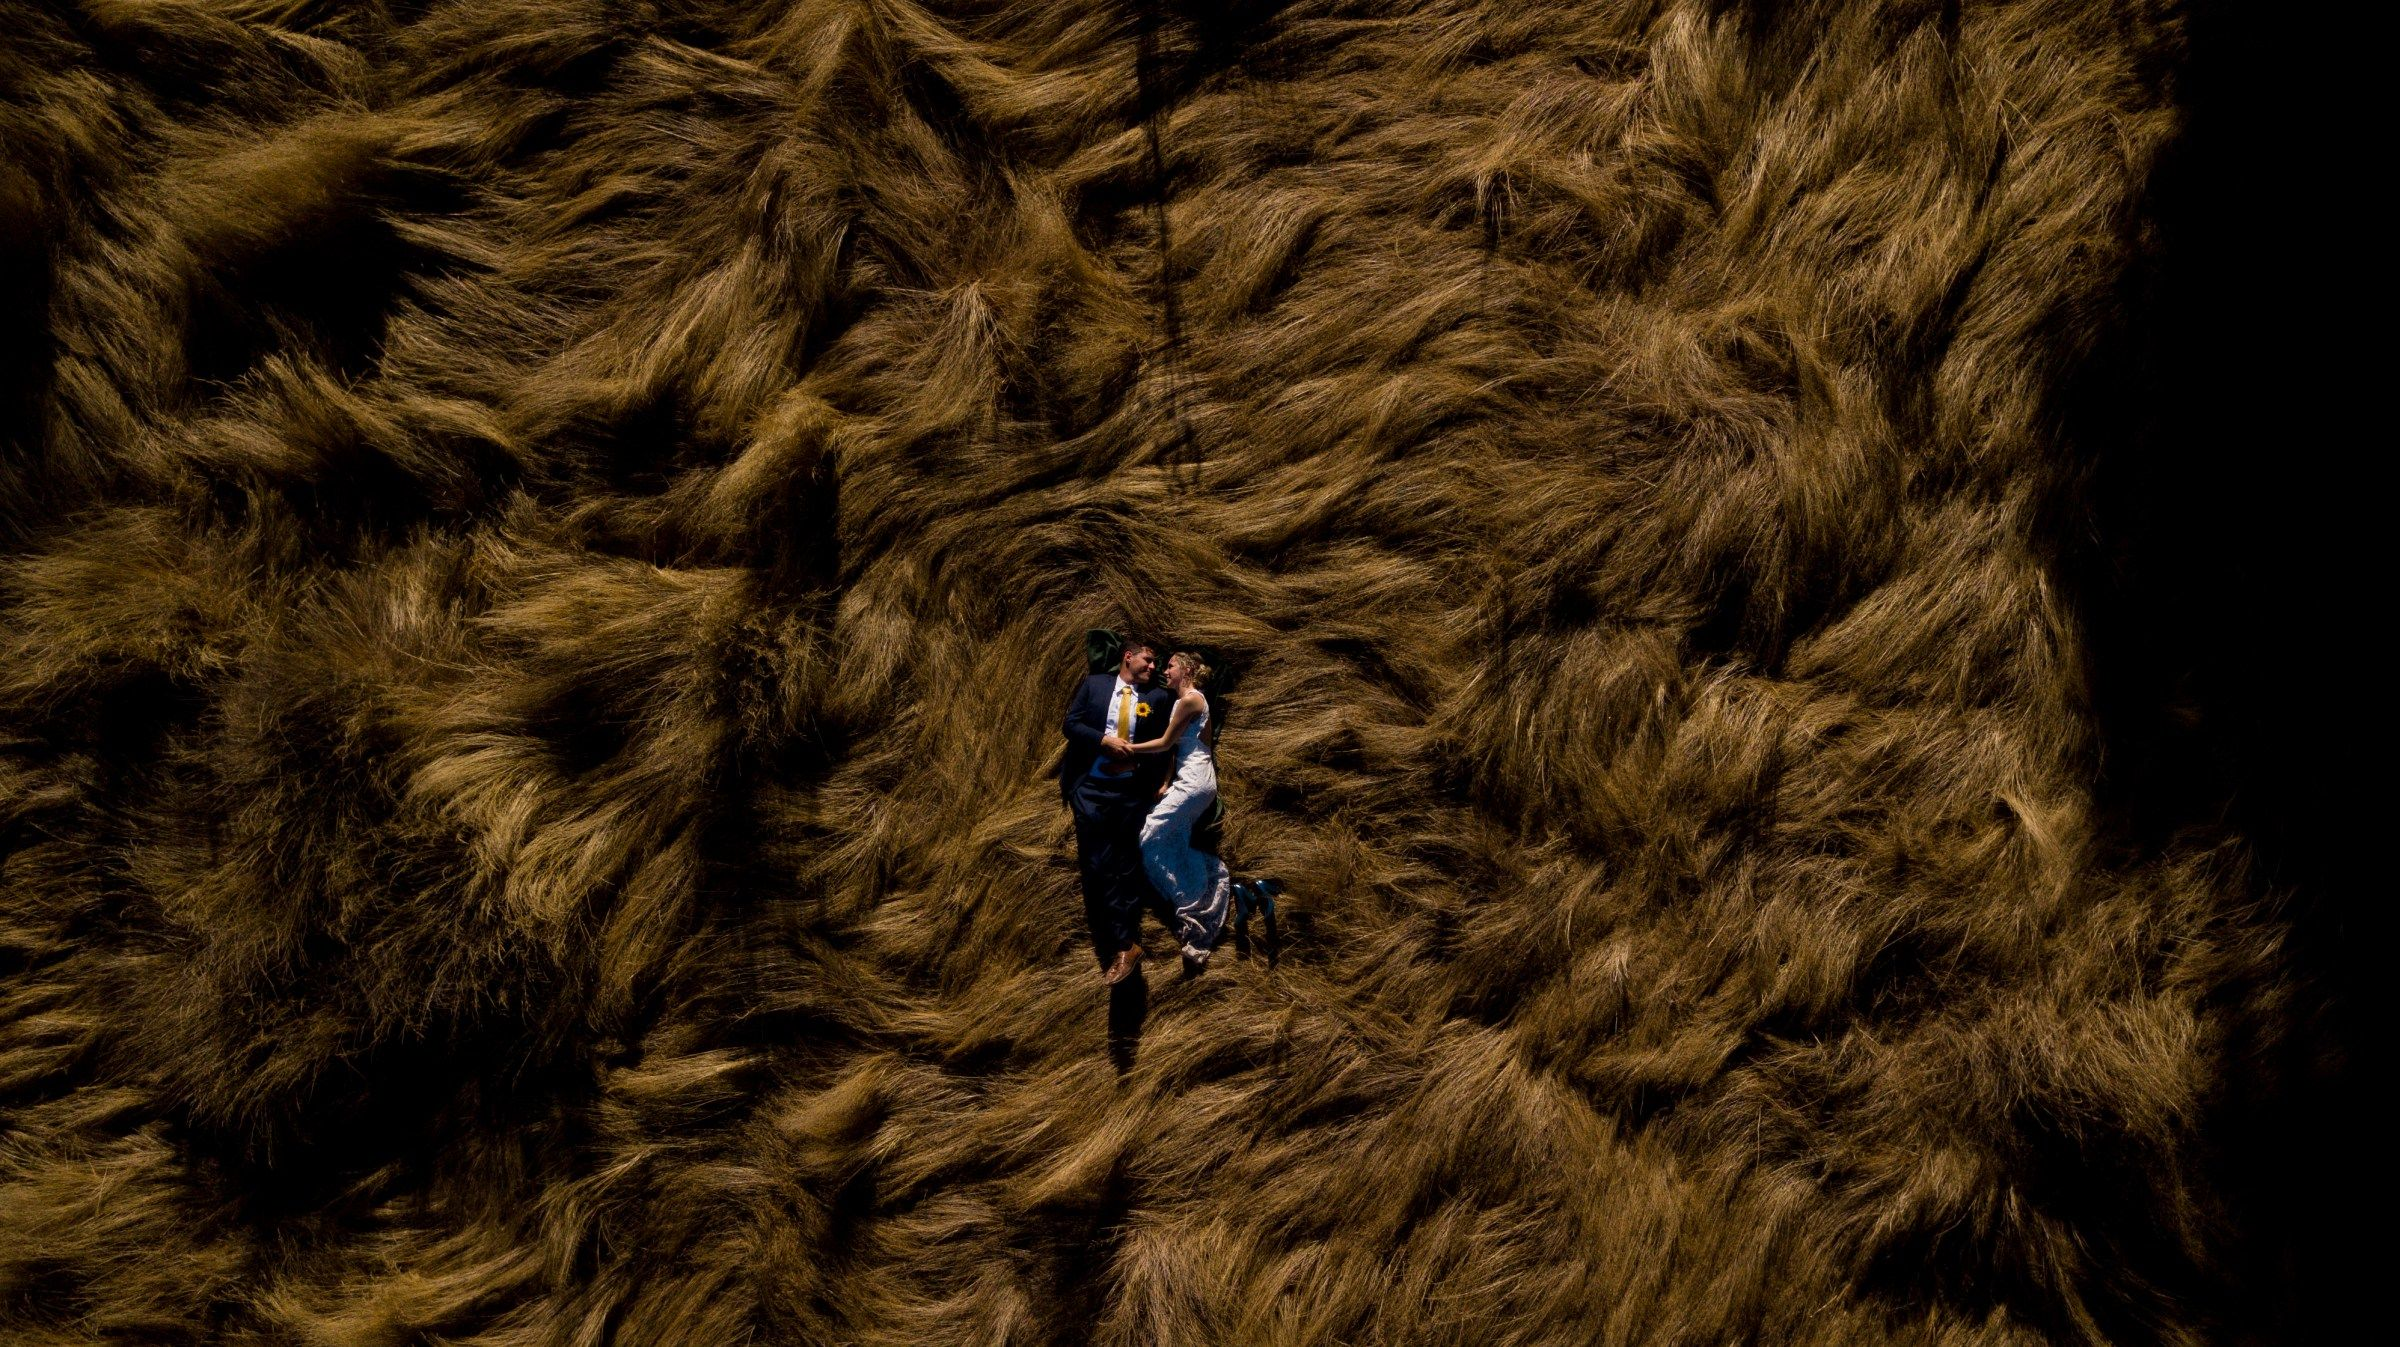 Some of our favorite artistic wedding photos